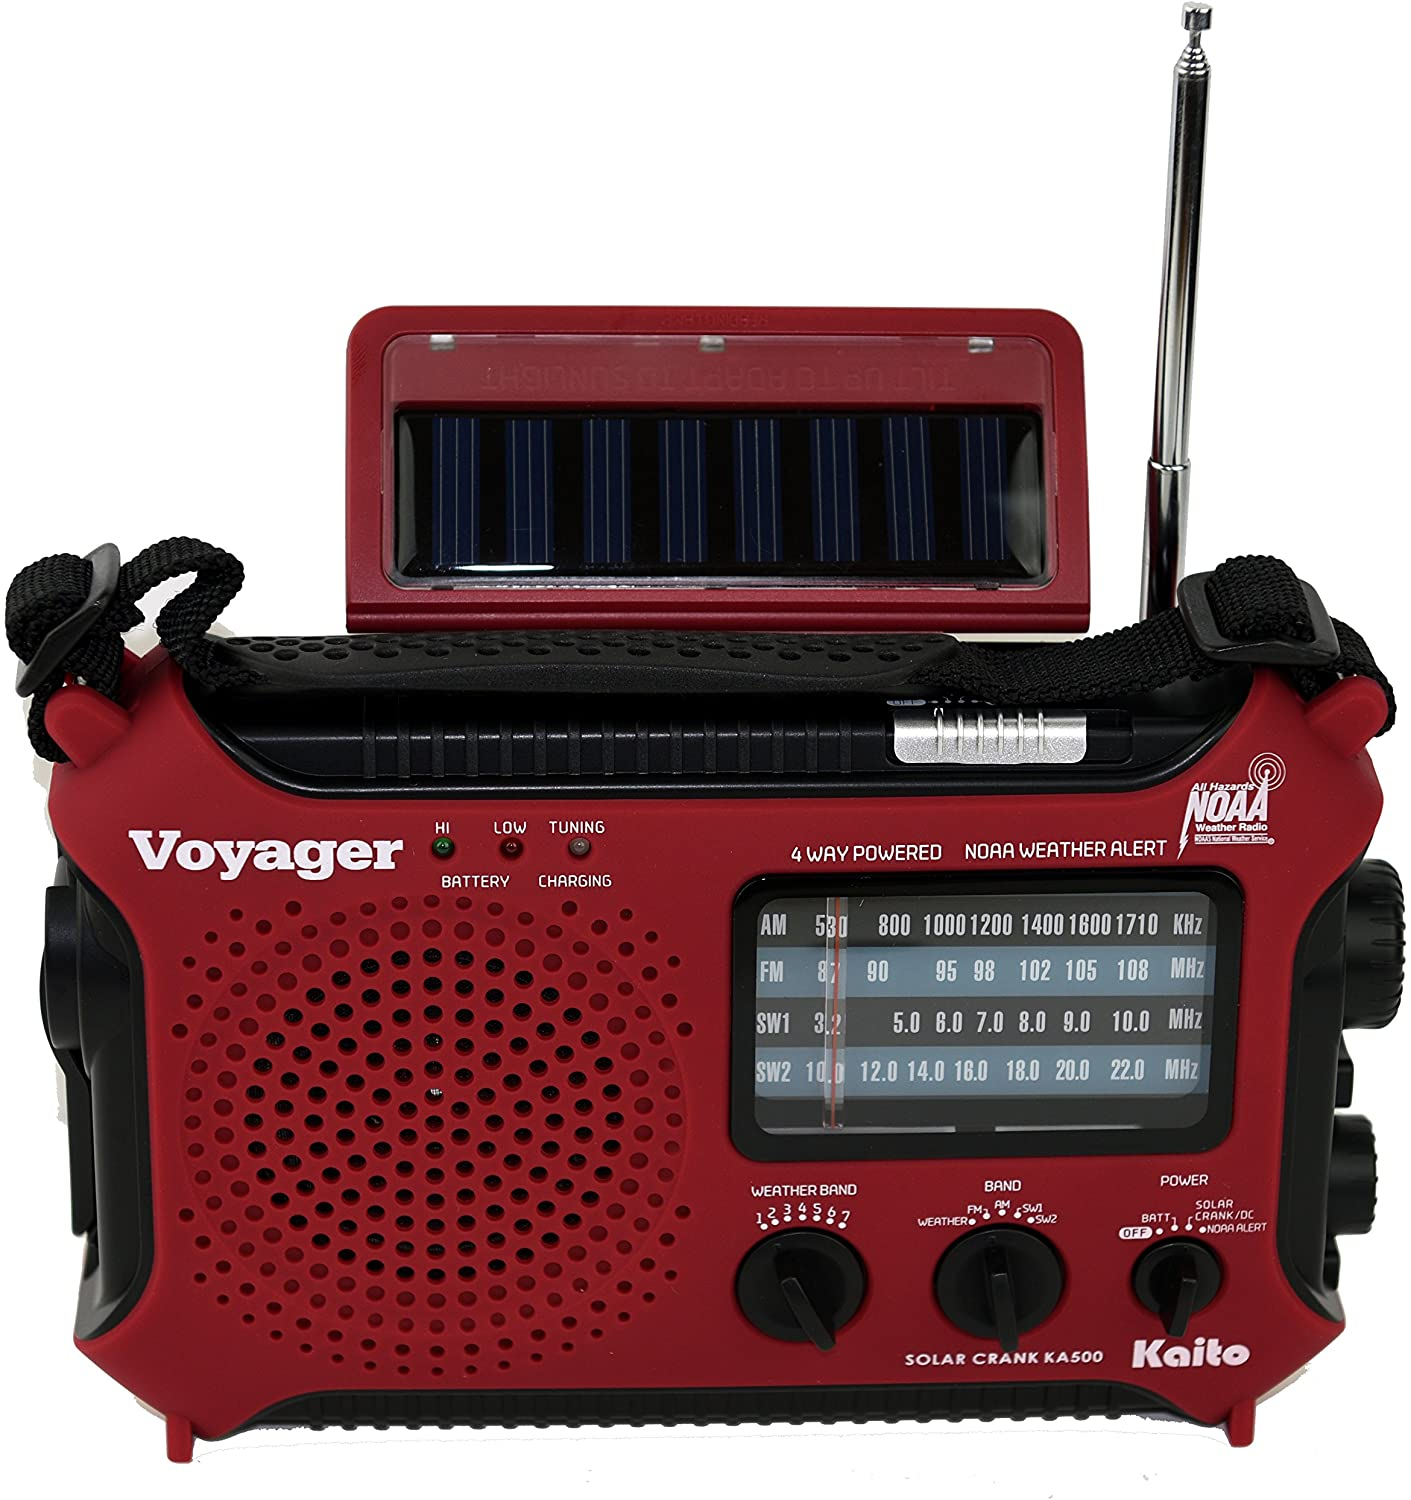 Kaito KA500RED 5-Way Powered Emergency AM/FM/SW Weather Alert Radio, Red: Home Audio & Theater